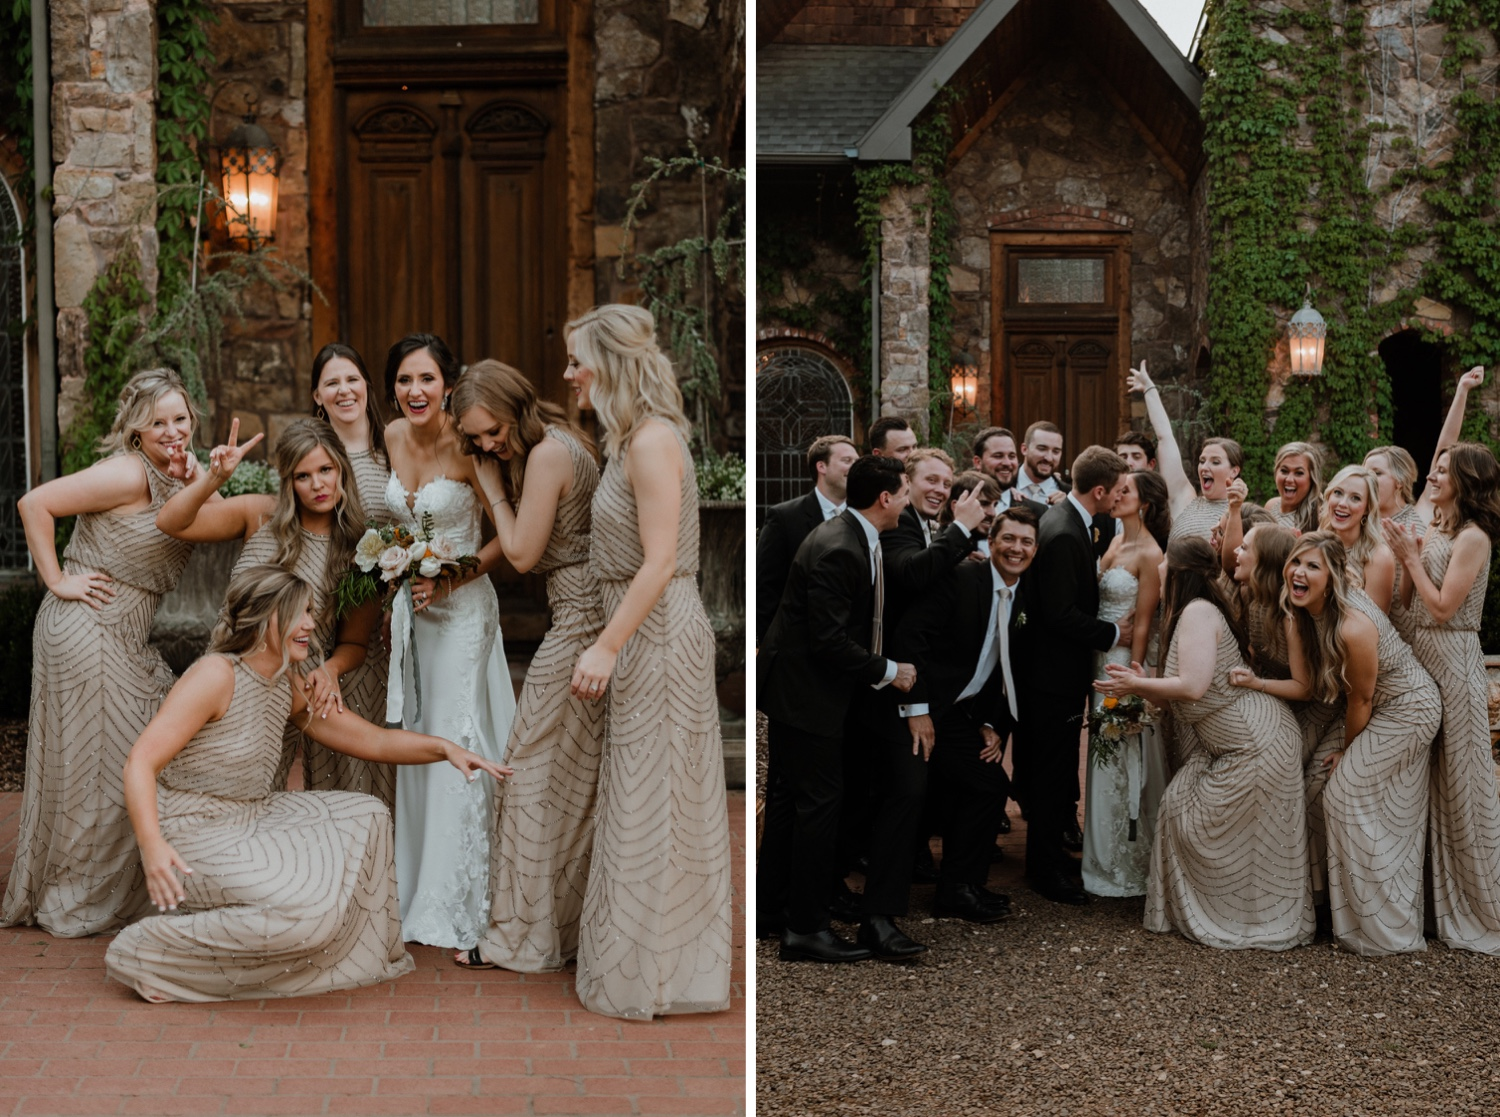 57_JacobandAliWeddingMattLaneFarmFreckledFoxPhotography-787_JacobandAliWeddingMattLaneFarmFreckledFoxPhotography-799.jpg